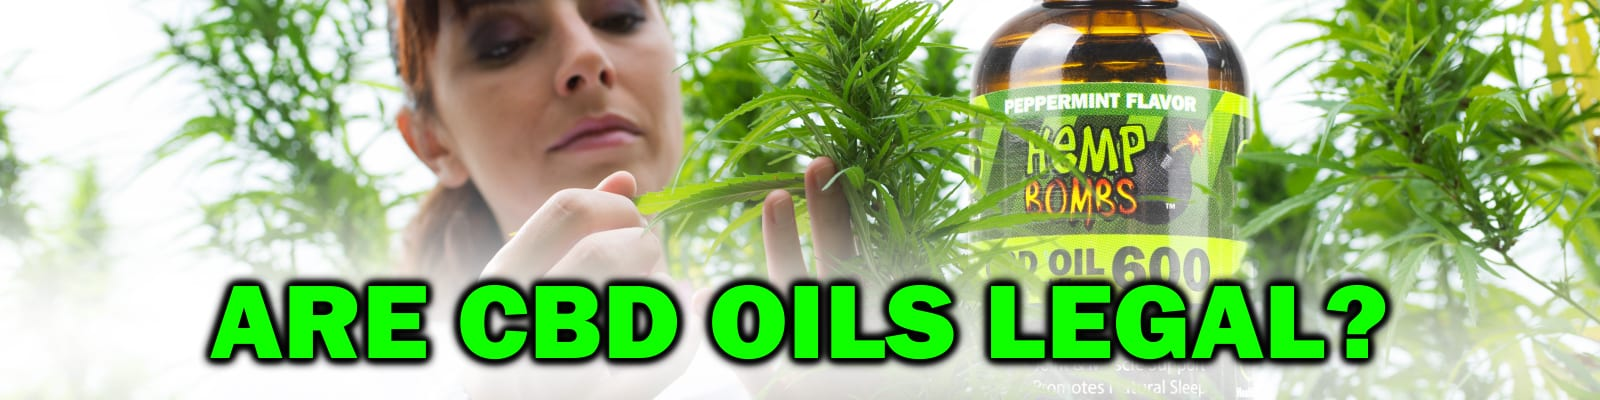 Are CBD Oils Legal with a peppermint 600mg CBD Oil and a girl examining a Hemp plant